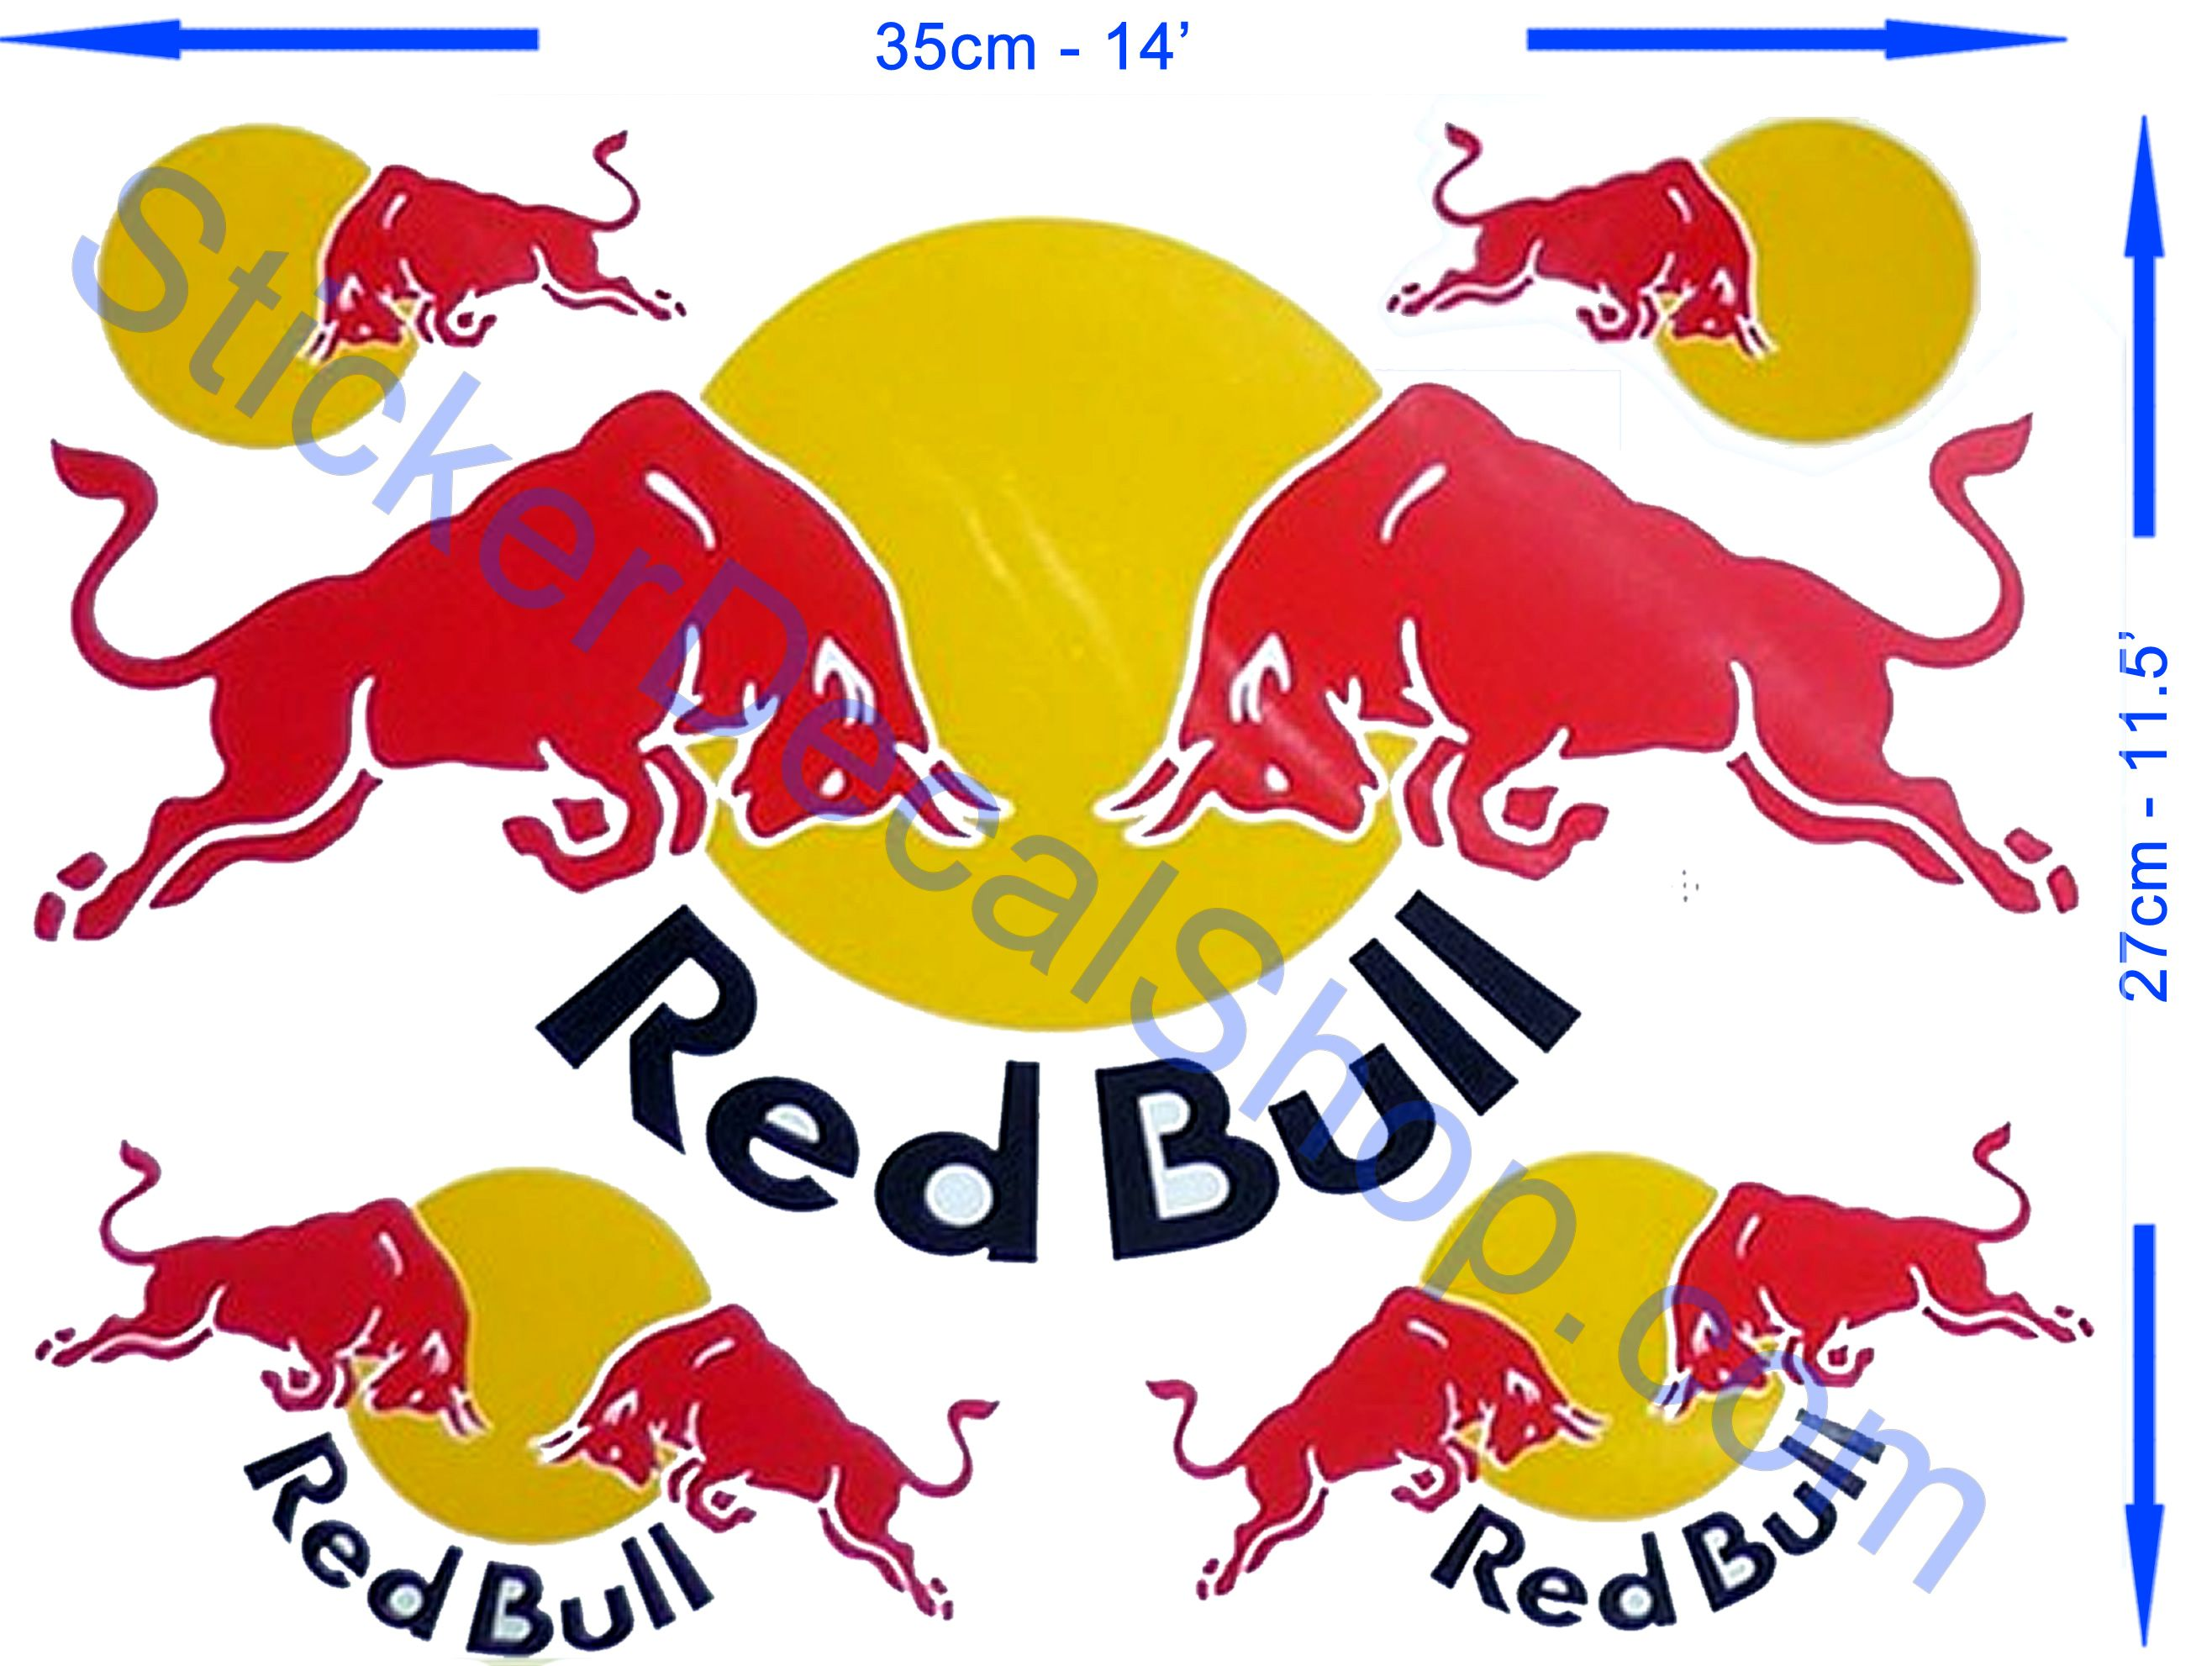 Red bull sticker on white background whit black letters big dimension aproximatly size of a3